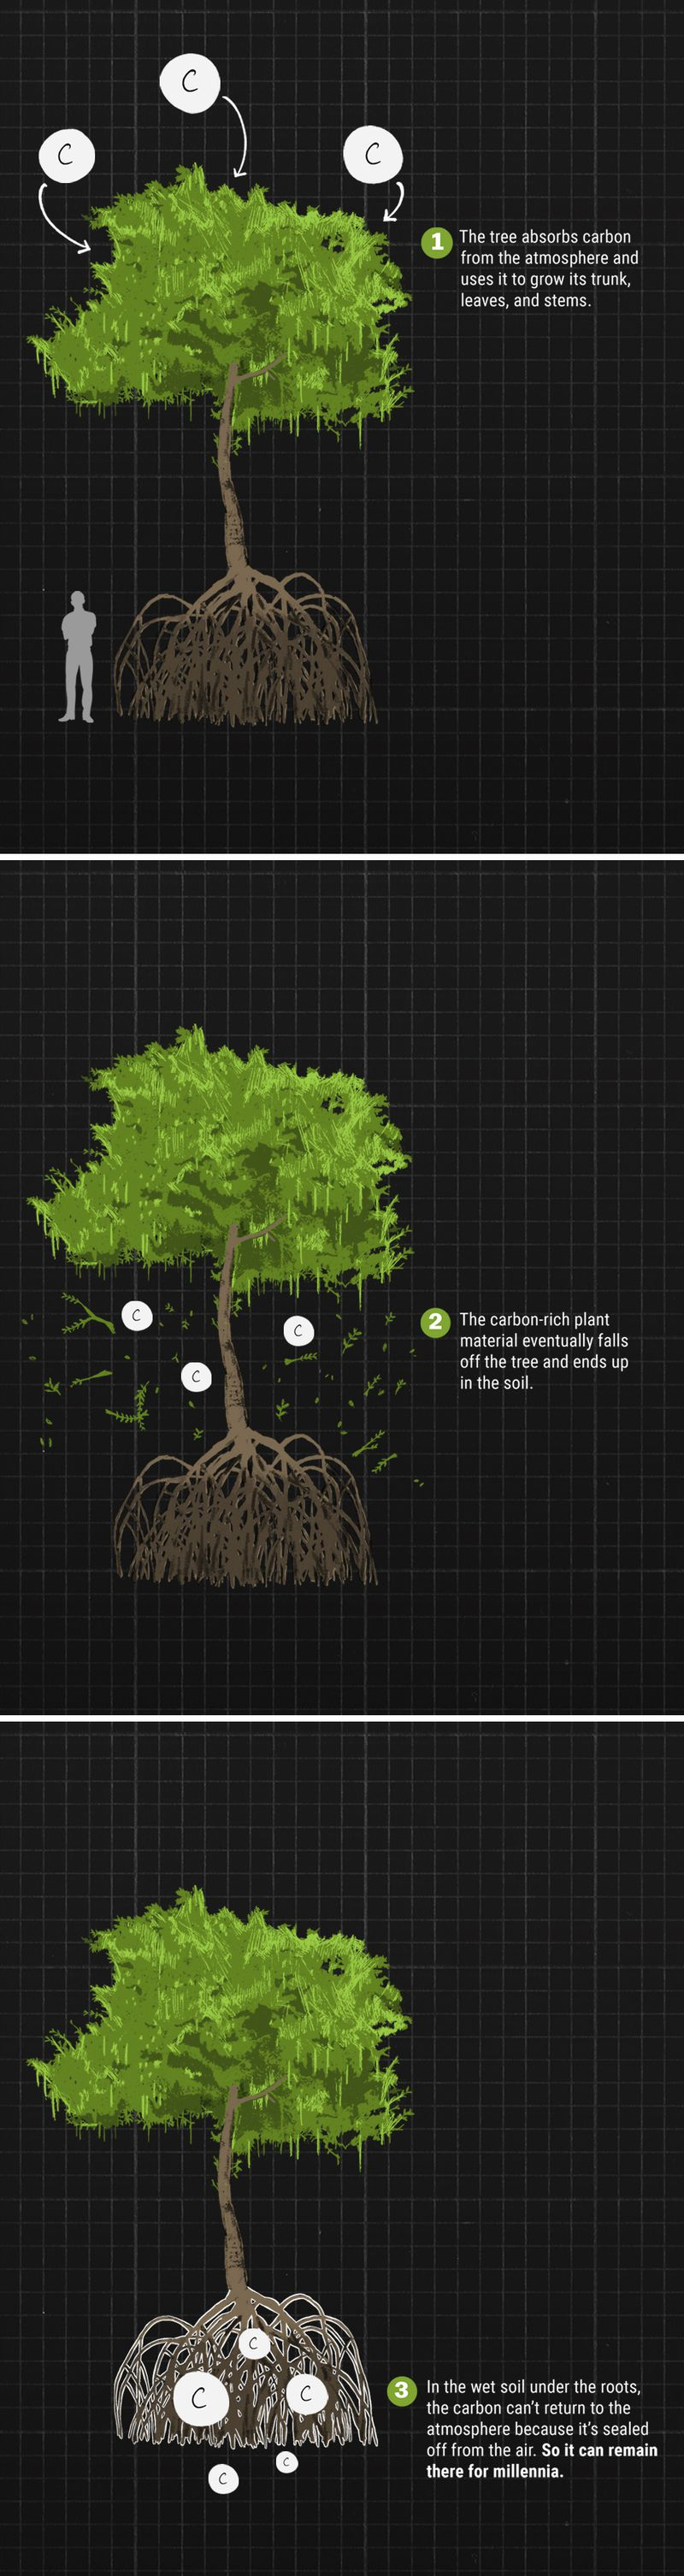 Graphic showing how the stilt mangrove absorbs carbon dioxide from the atmosphere.